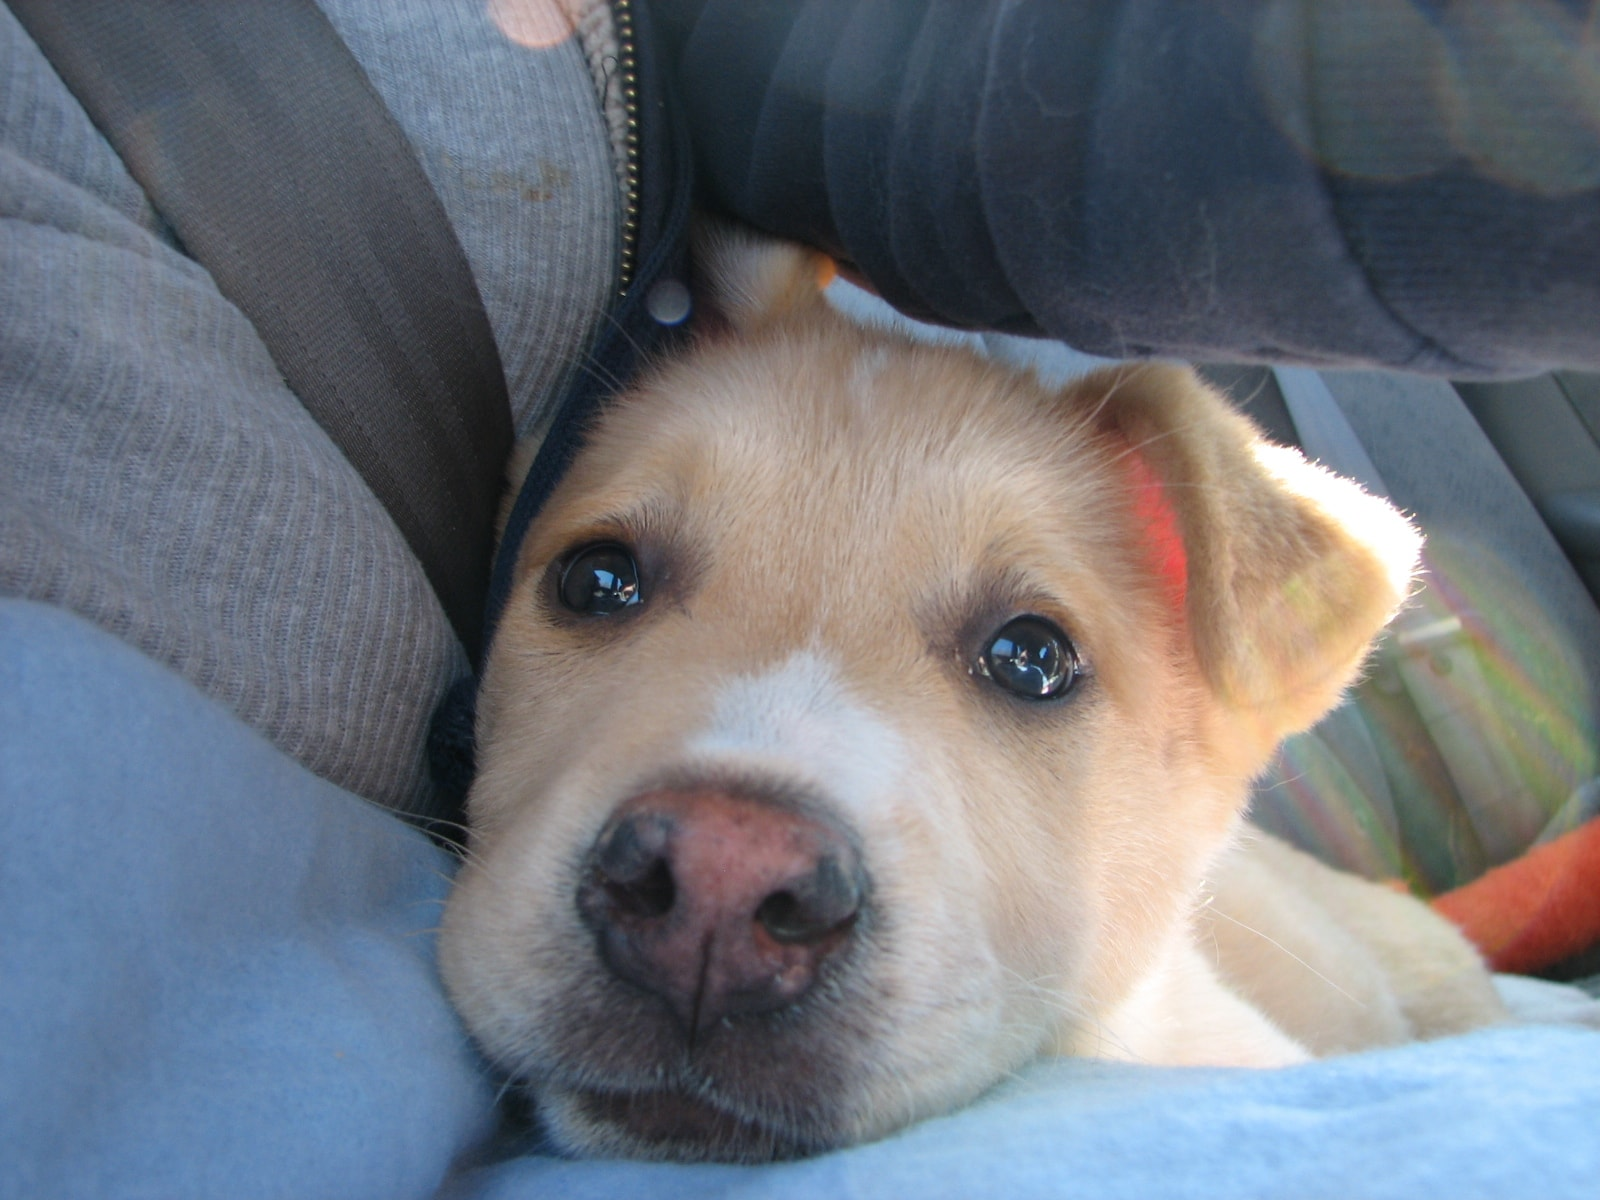 PuppyLife: Bringing Home a New Puppy